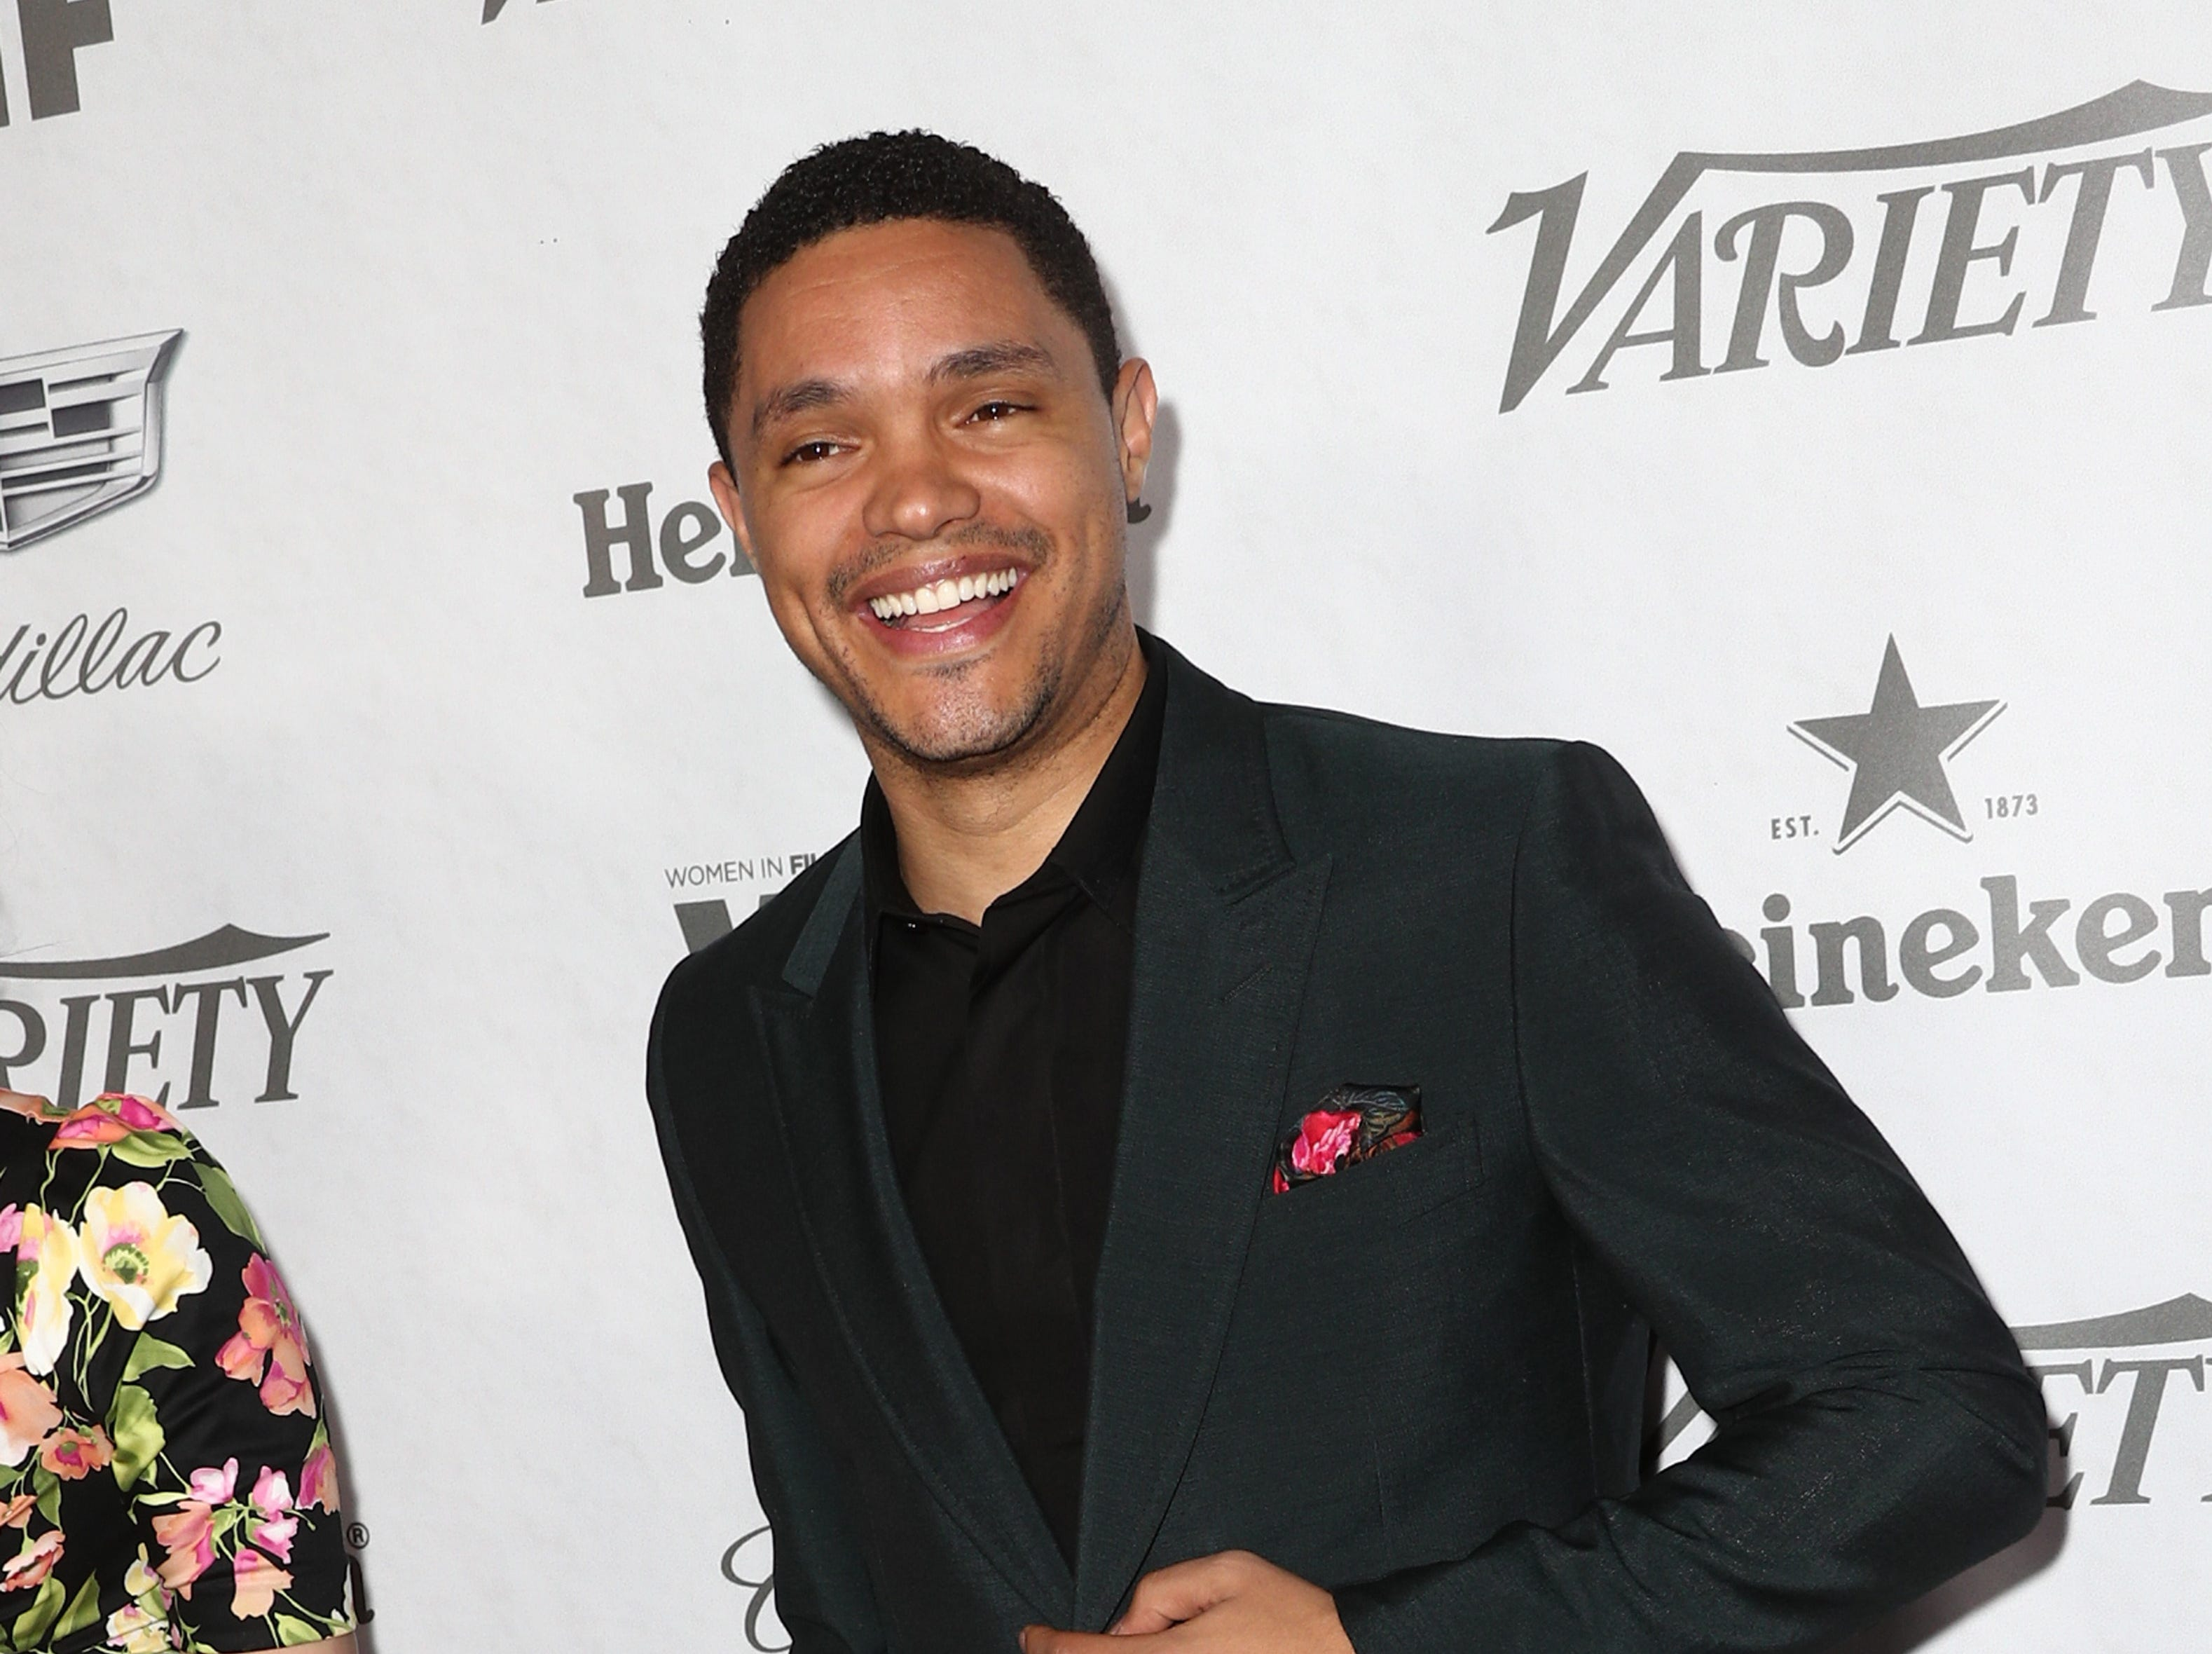 WEST HOLLYWOOD, CA - SEPTEMBER 15:  Trevor Noah attends Variety and Women in Film's 2018 Pre-Emmy Celebration at Cecconi's on September 15, 2018 in West Hollywood, California.  (Photo by Frederick M. Brown/Getty Images) ORG XMIT: 775218358 ORIG FILE ID: 1033997028